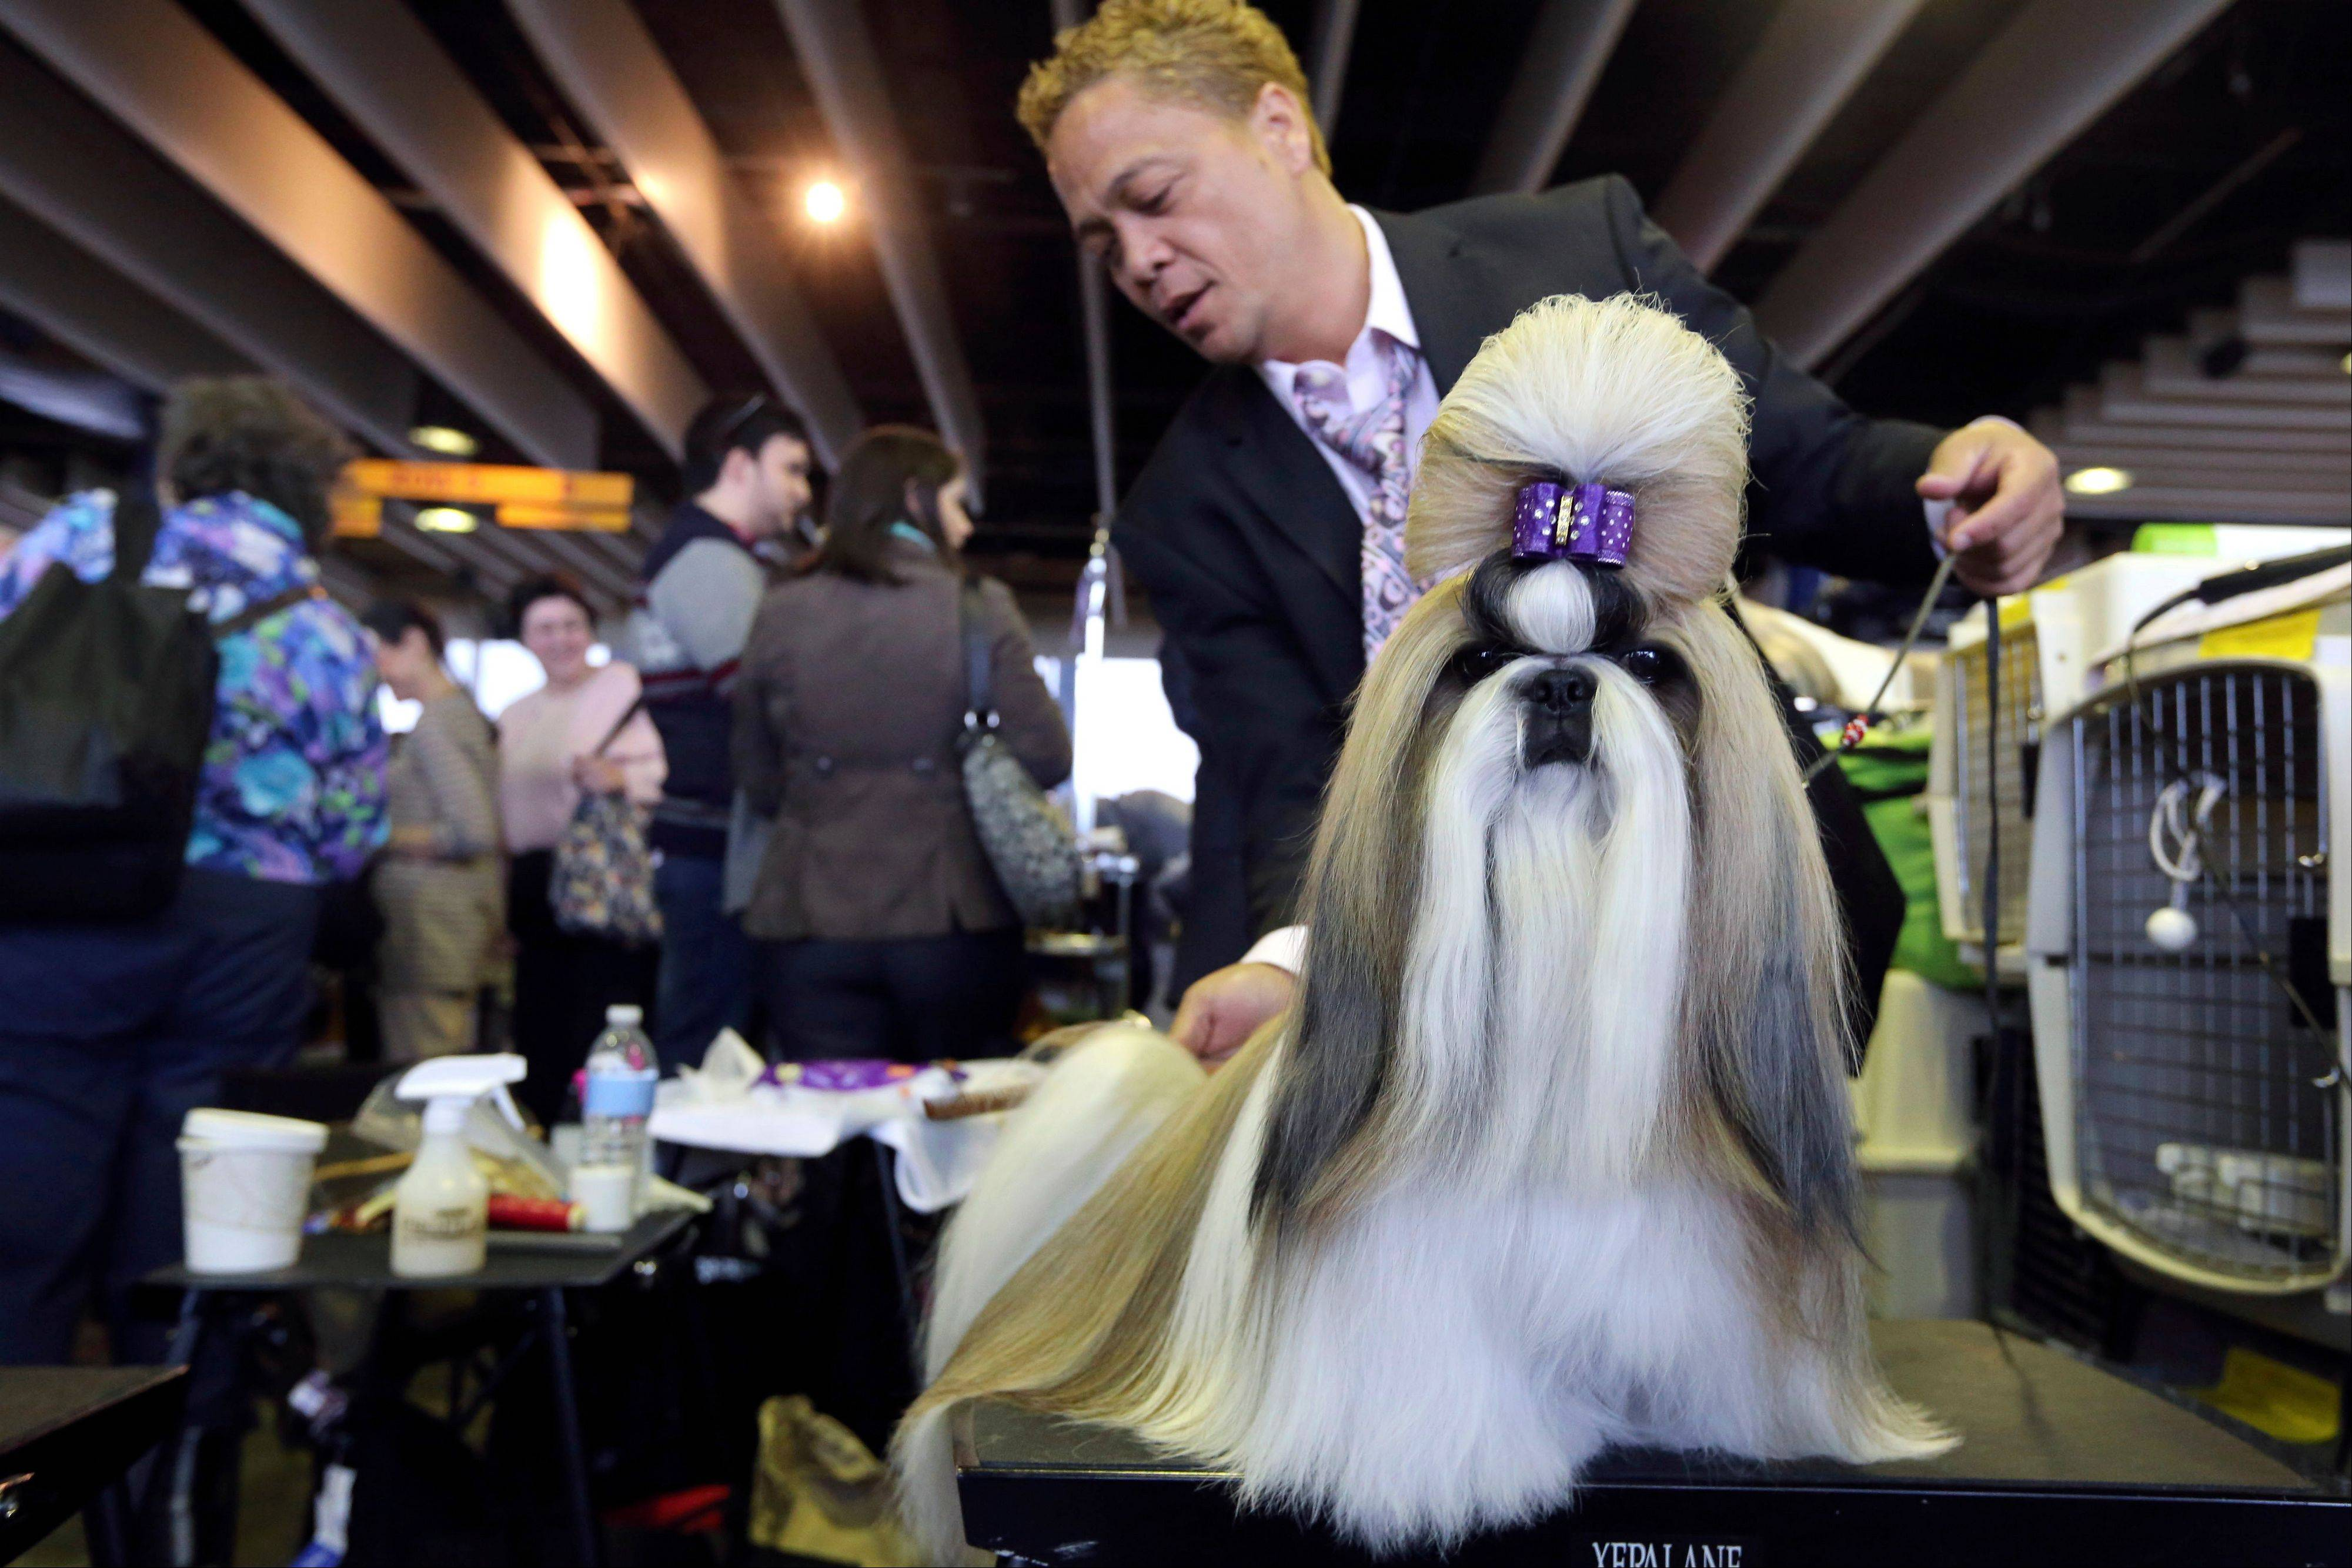 Craig Garcia grooms Fire, a 2-year-old Shih Tzu from Cape Town, South Africa, during the 137th Westminster Kennel Club Dog Show Monday in New York.